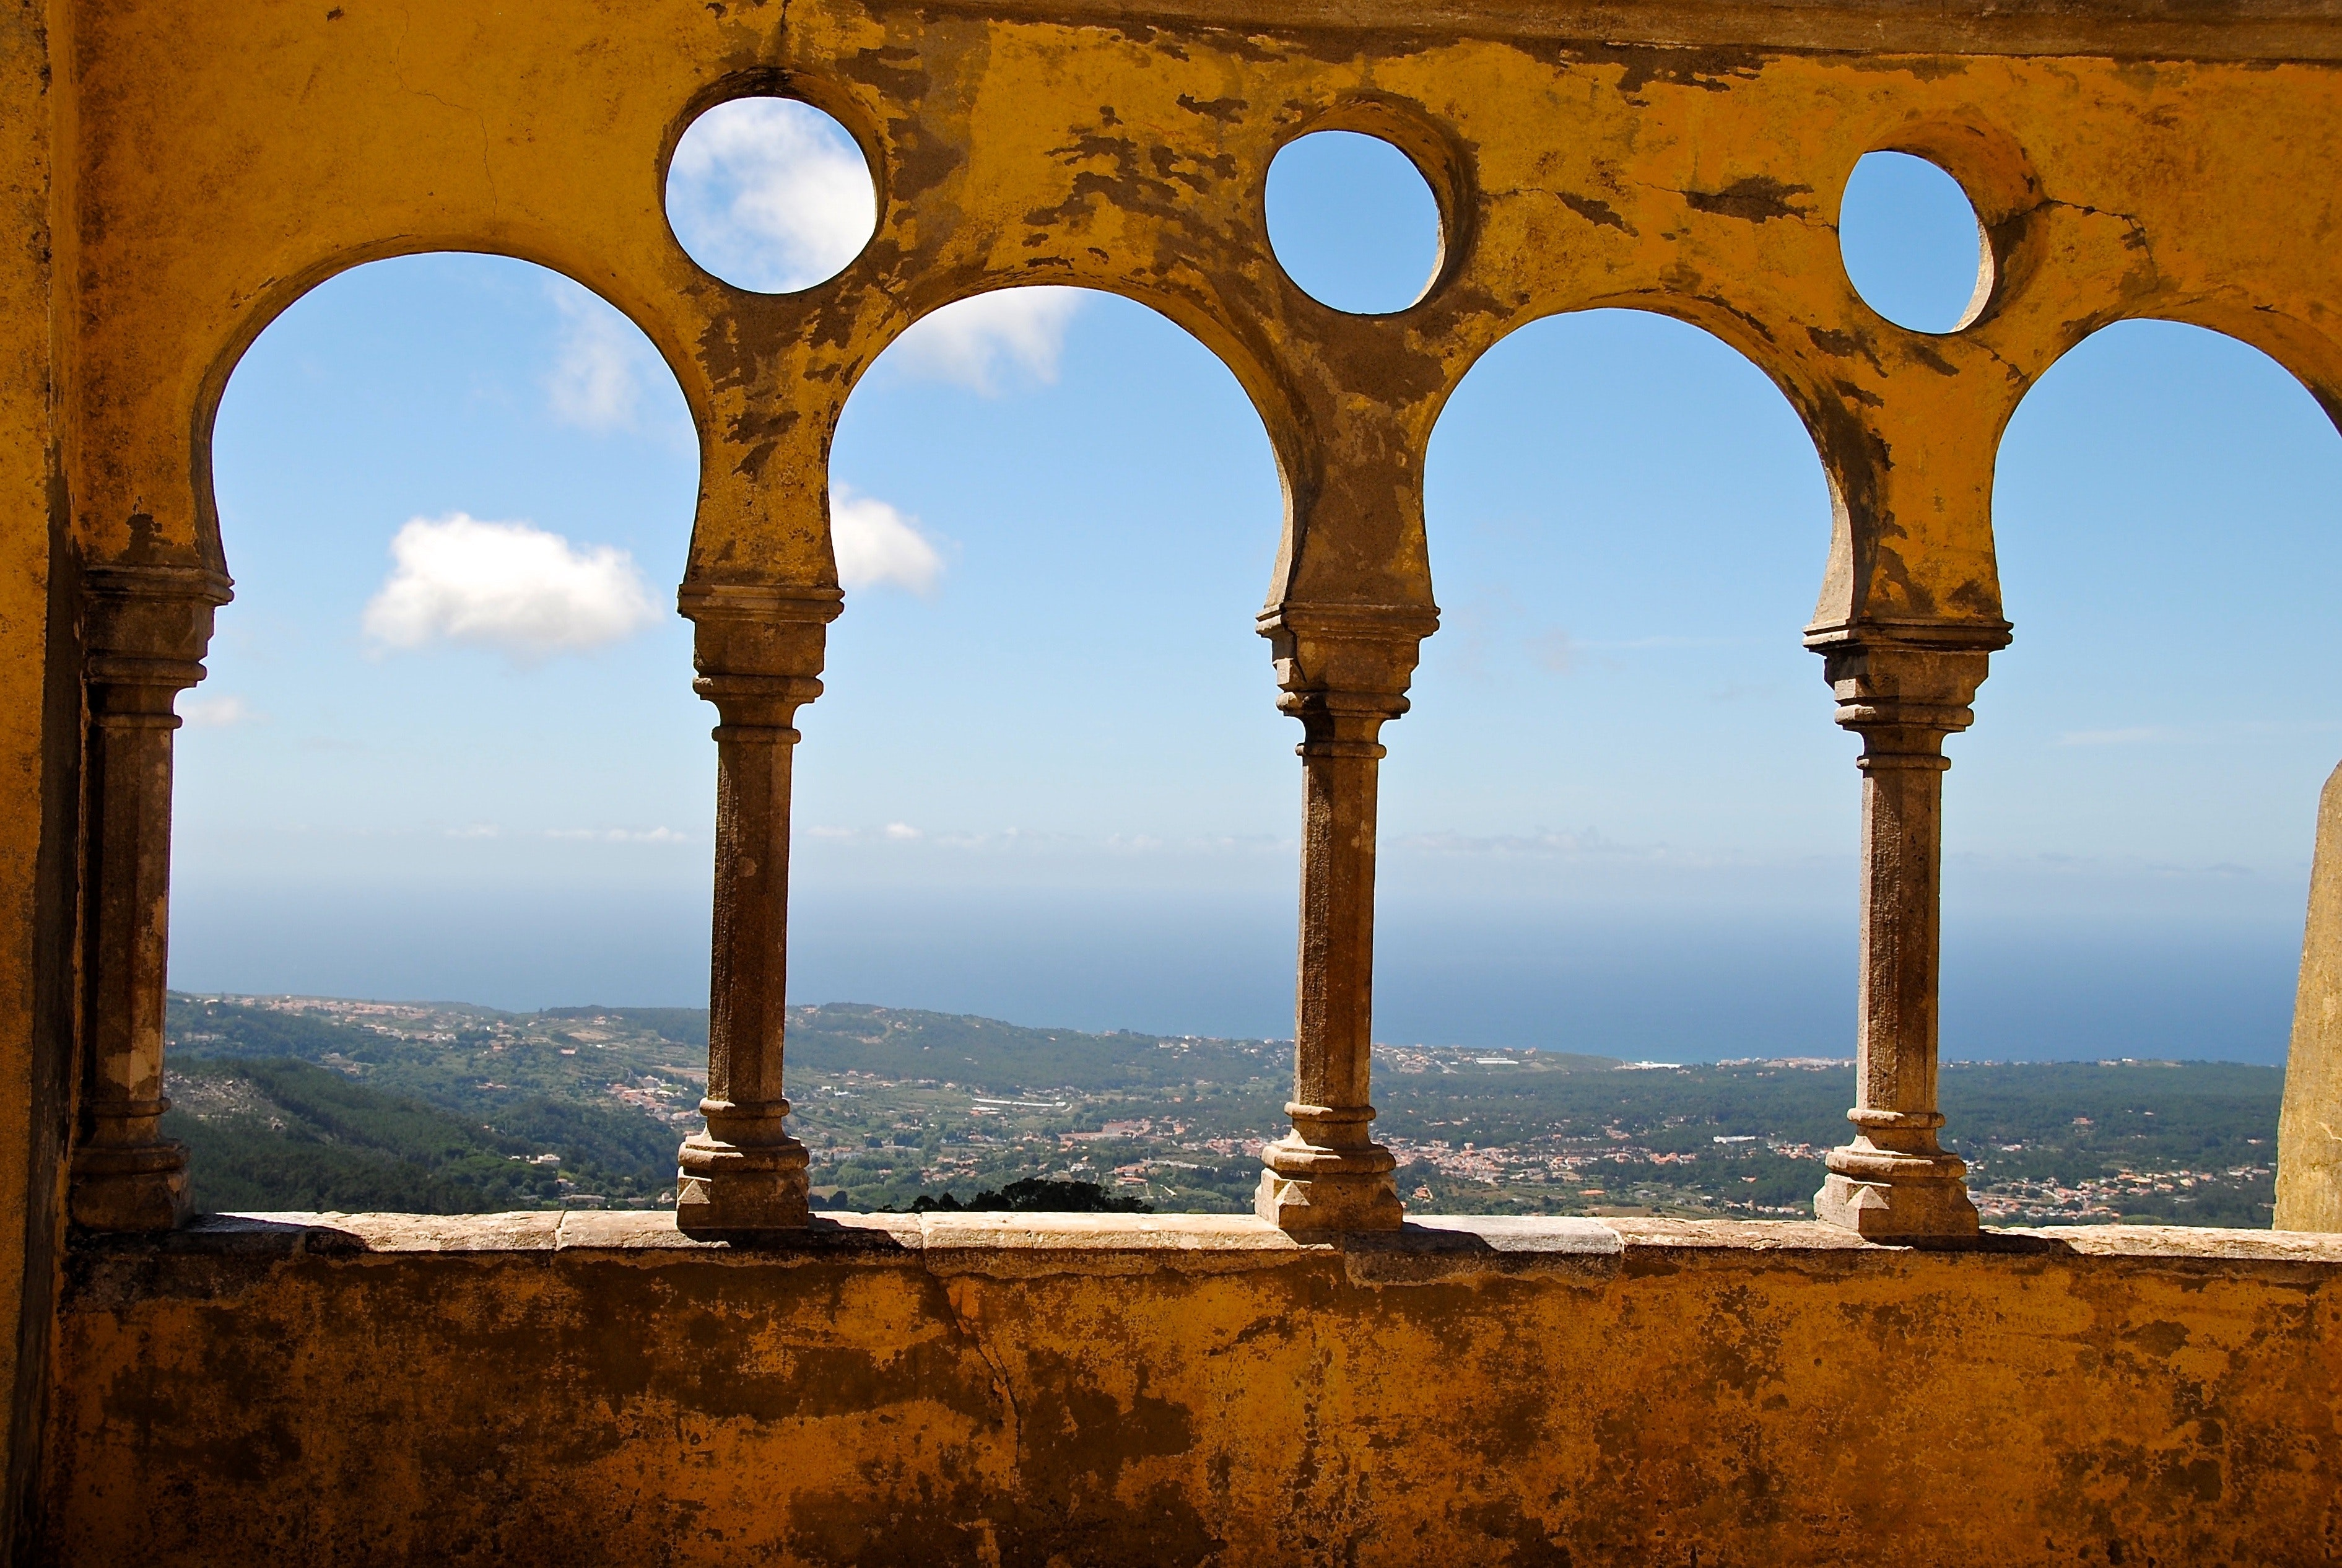 Grey Concrete 3 Baluster Near Mountains and Sea during Daytime, Ancient, Portugal, Unesco world heritage site, Travel, HQ Photo